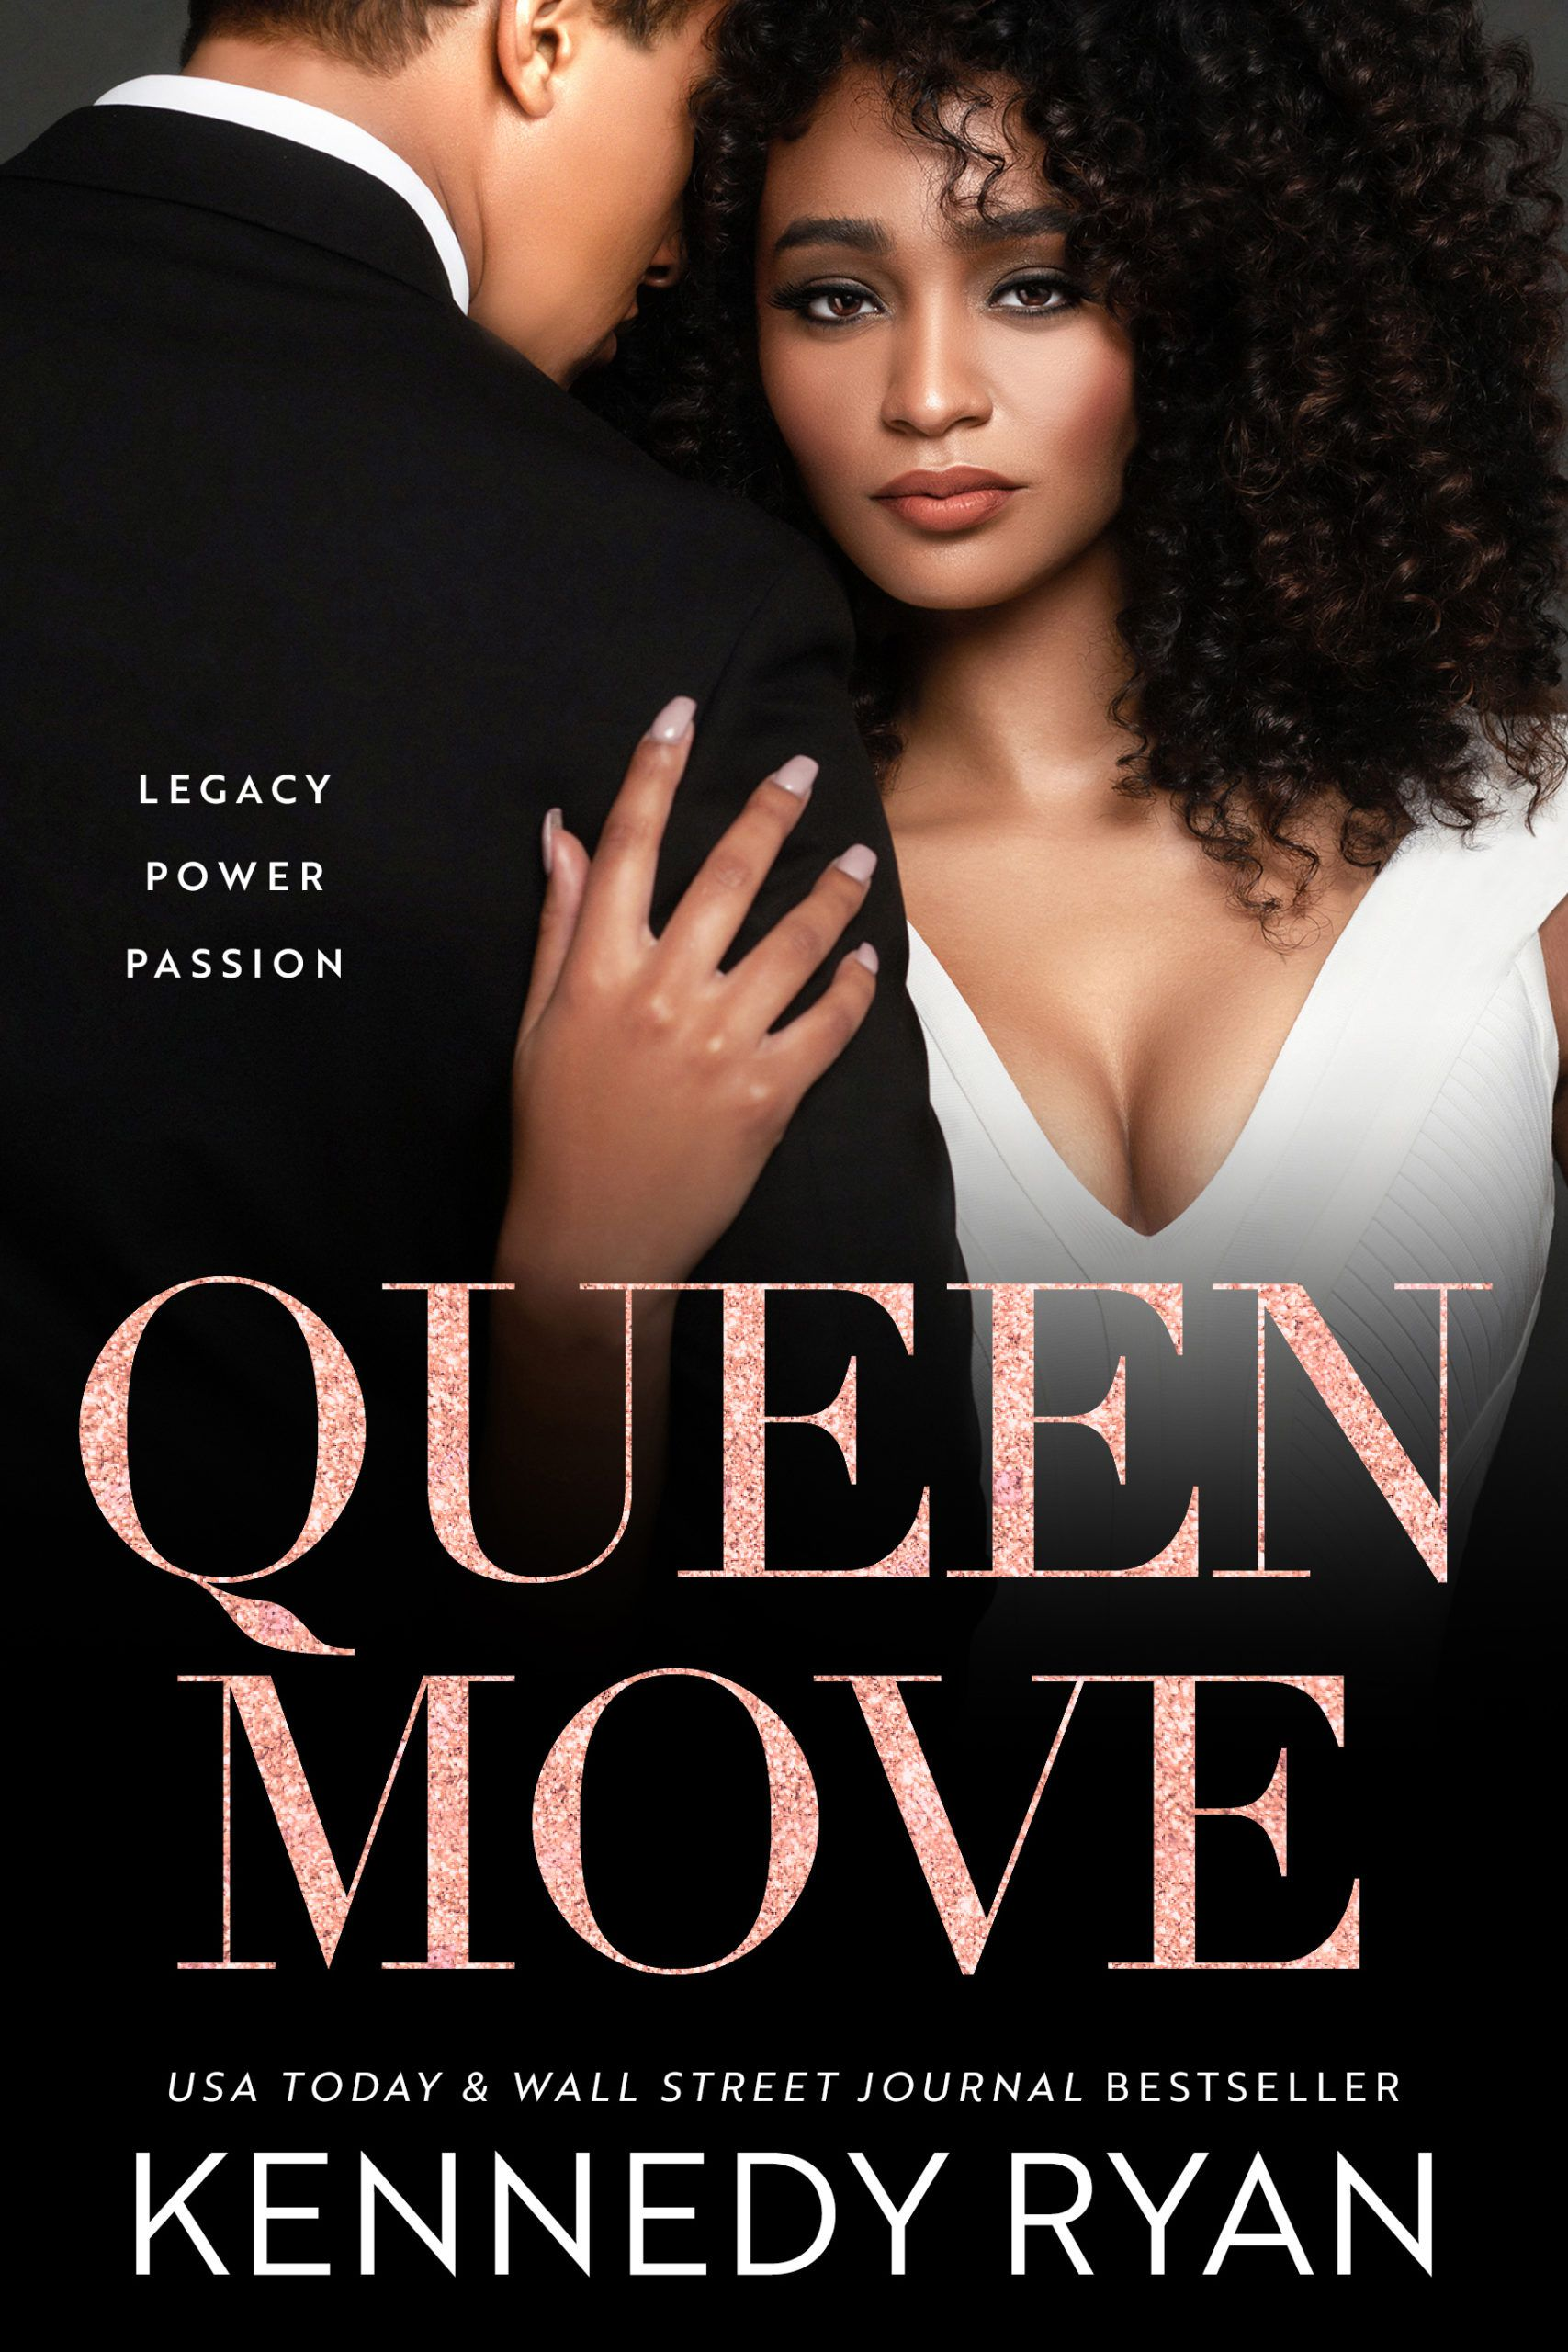 Cover of Queen Move about a political consultant working for social change